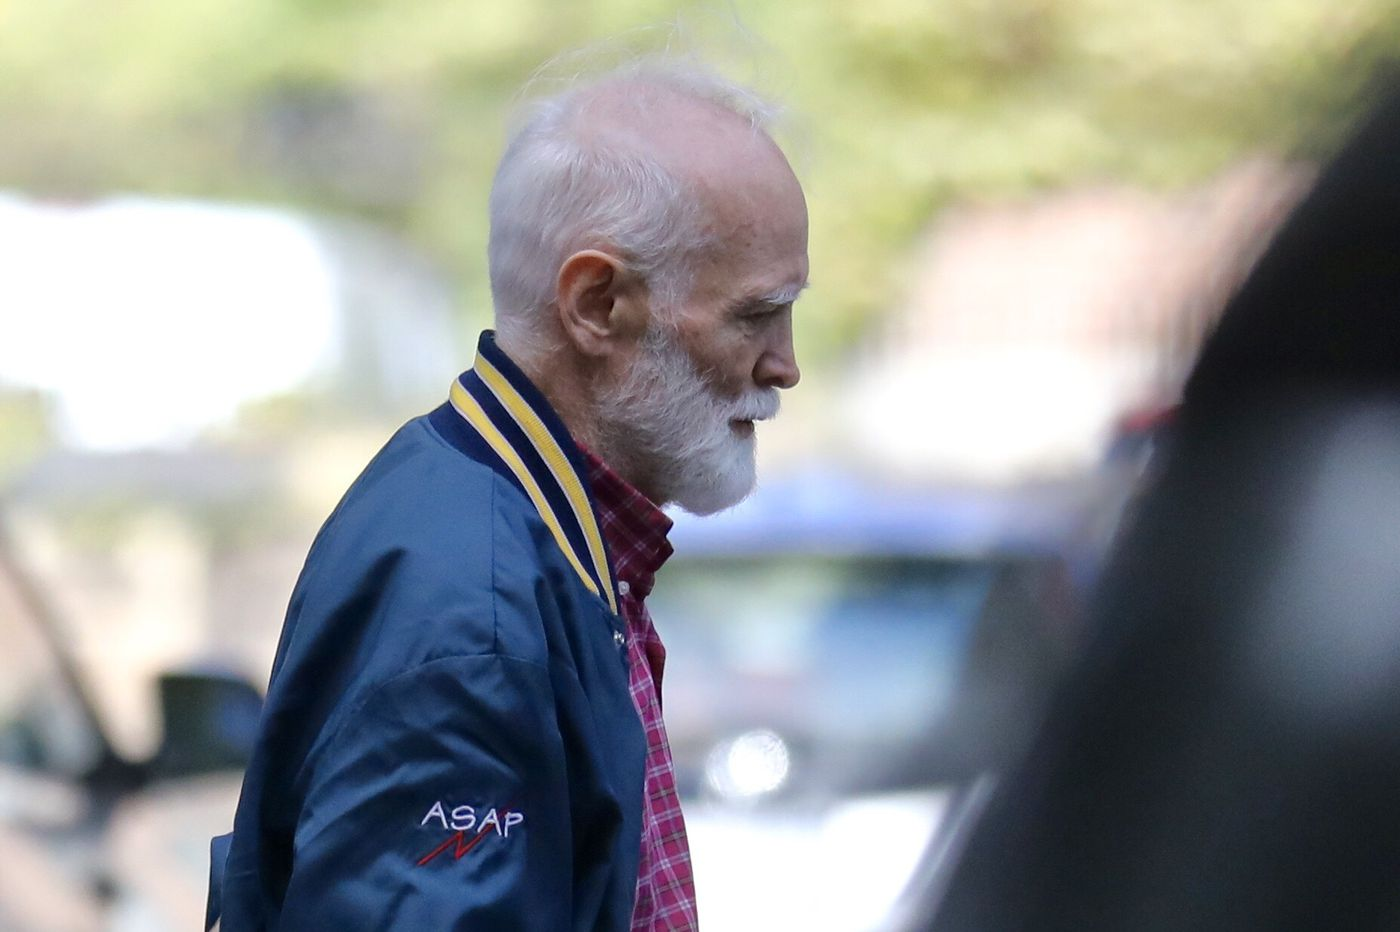 For former chess coach who taught at Philly's Masterman and Douglass, questions but no charges